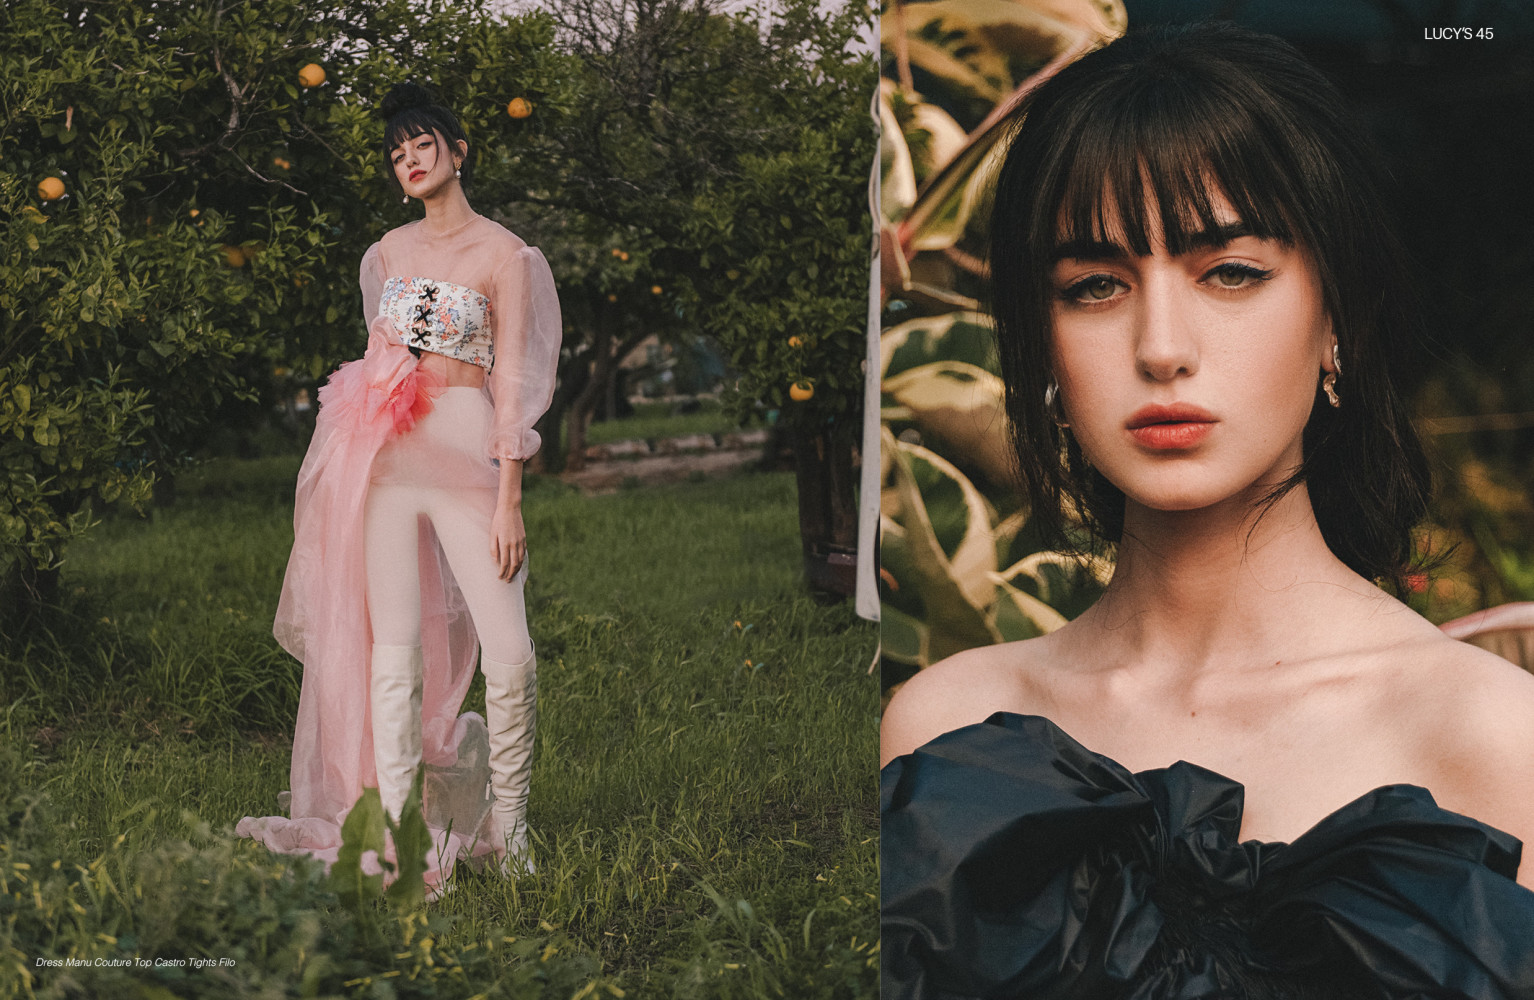 STUNNING SHAKED for LUCY'S MAGAZINE